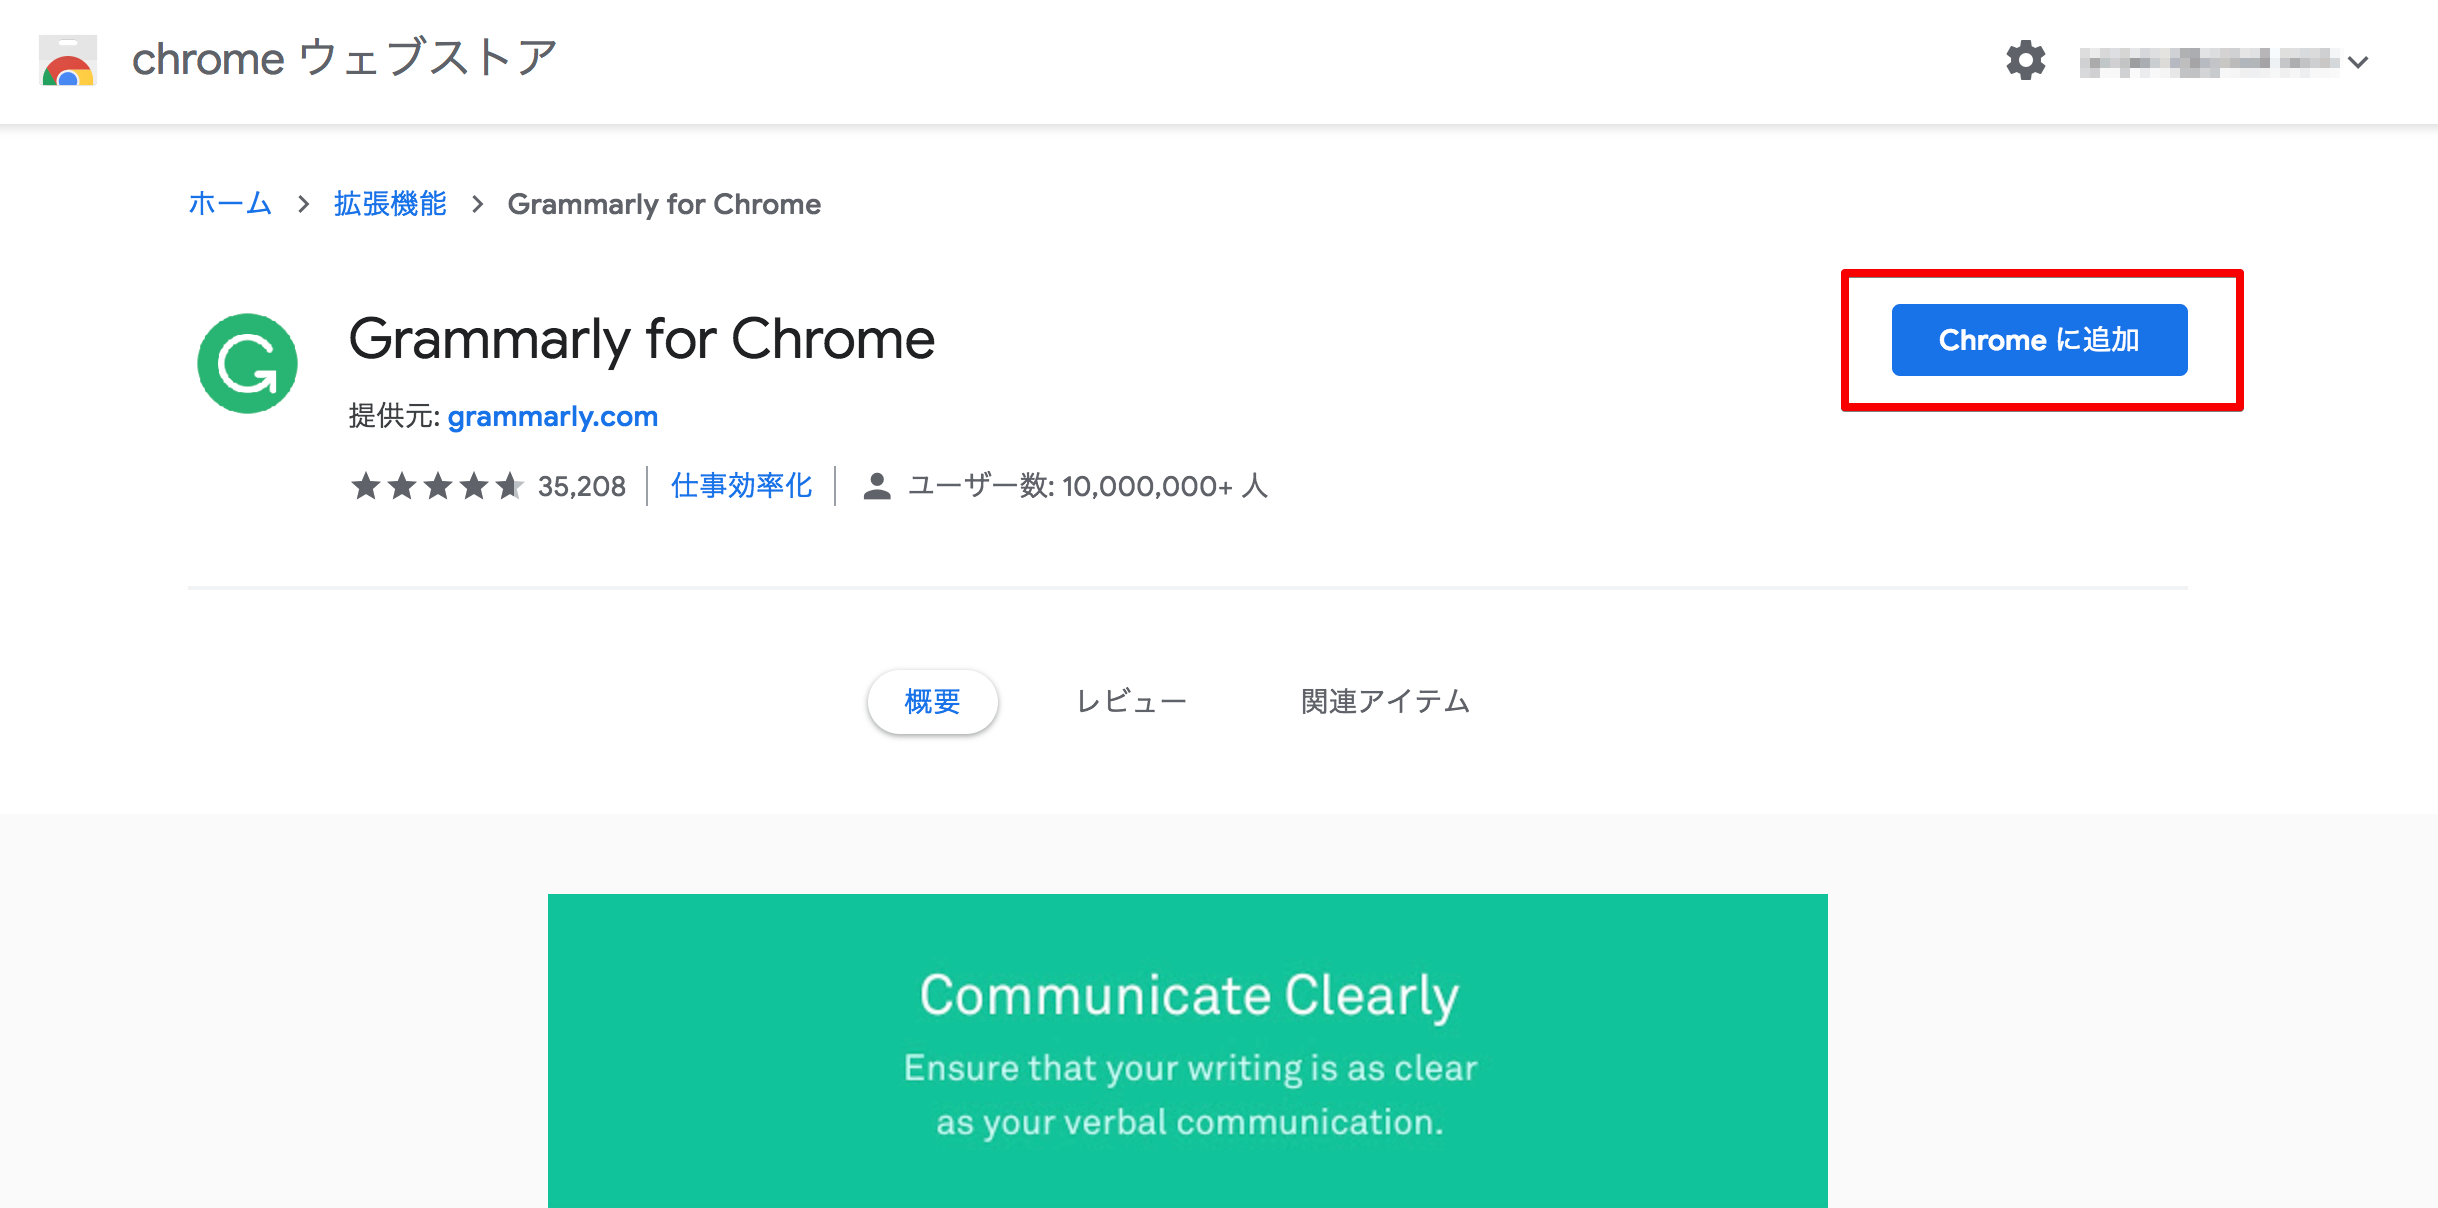 Grammarly for Chrome - Chrome ウェブストア 2019-02-23 08-29-52.png